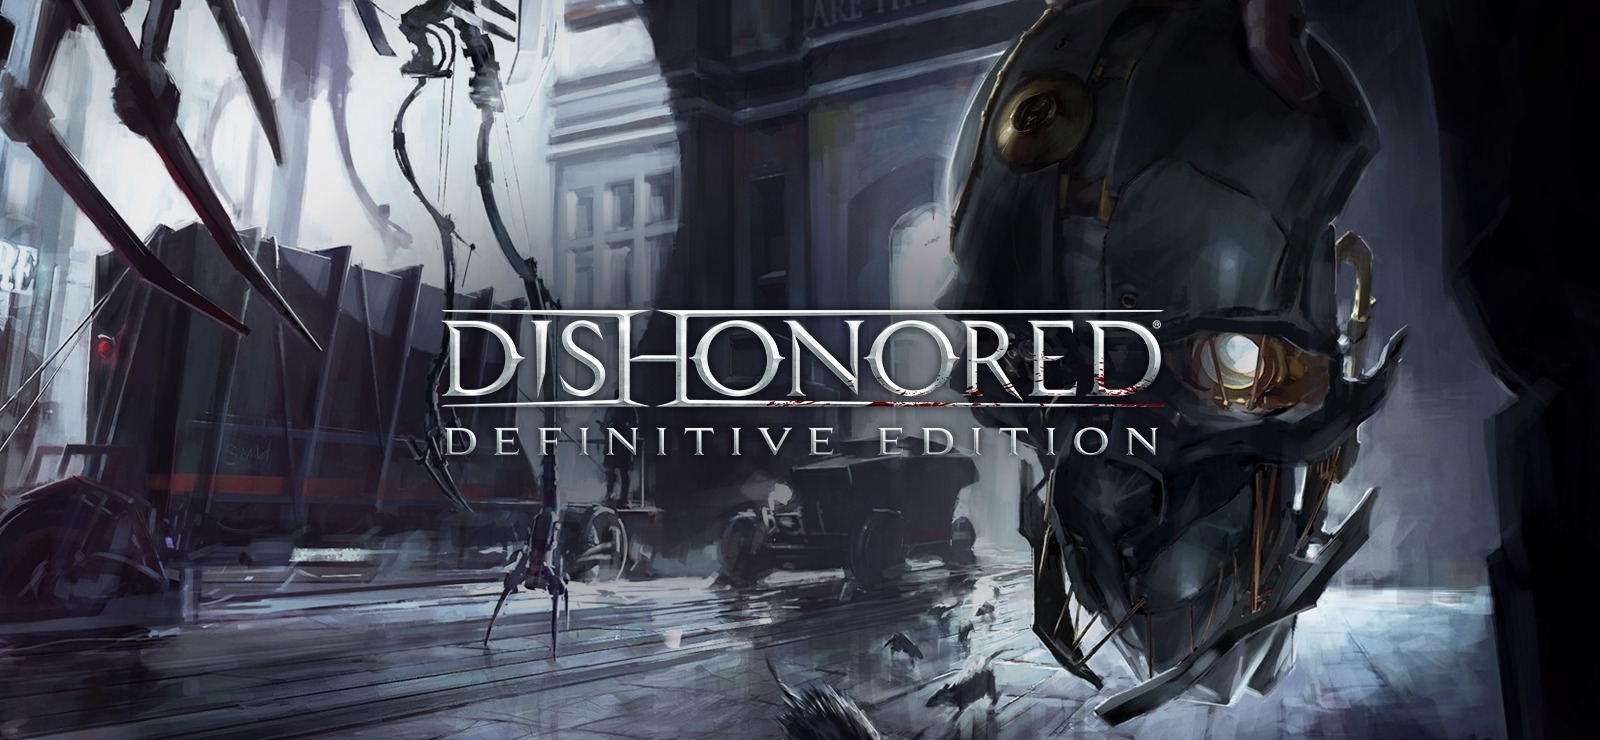 Dishonored - Definitive Edition on GOG.com